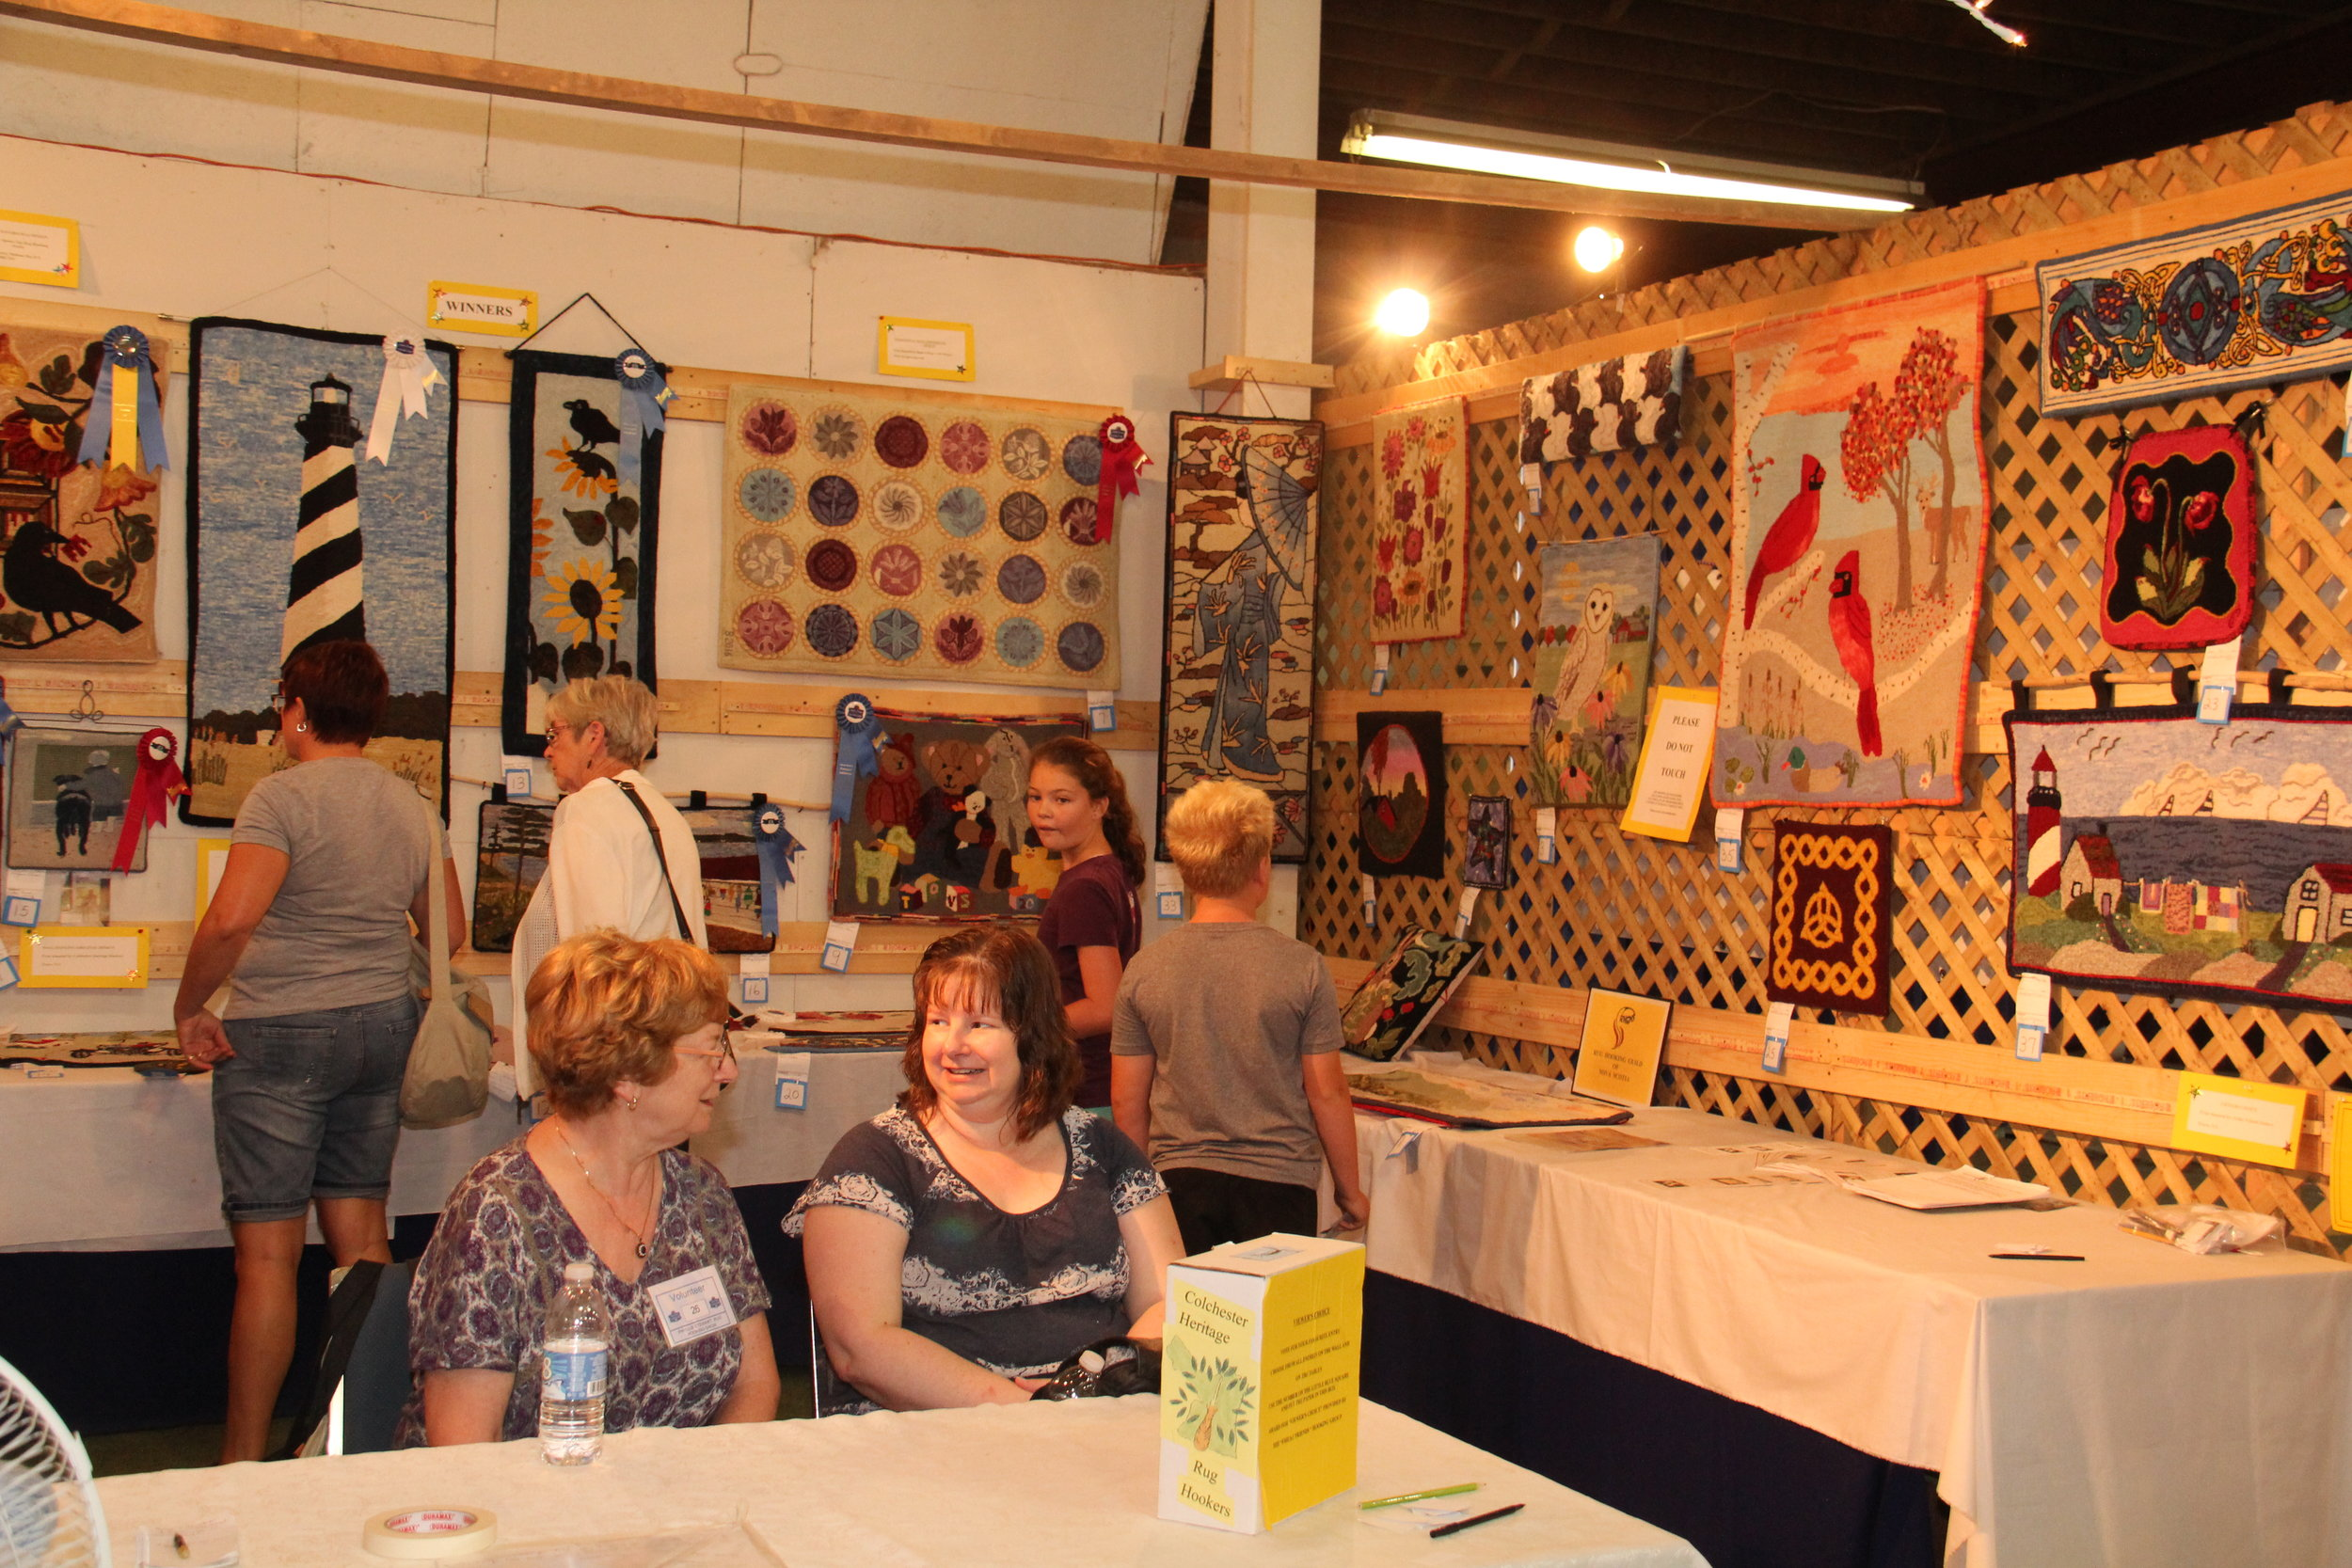 Friendly and helpful Volunteers oversee the displays at the Exhibition and answer visitors questions.